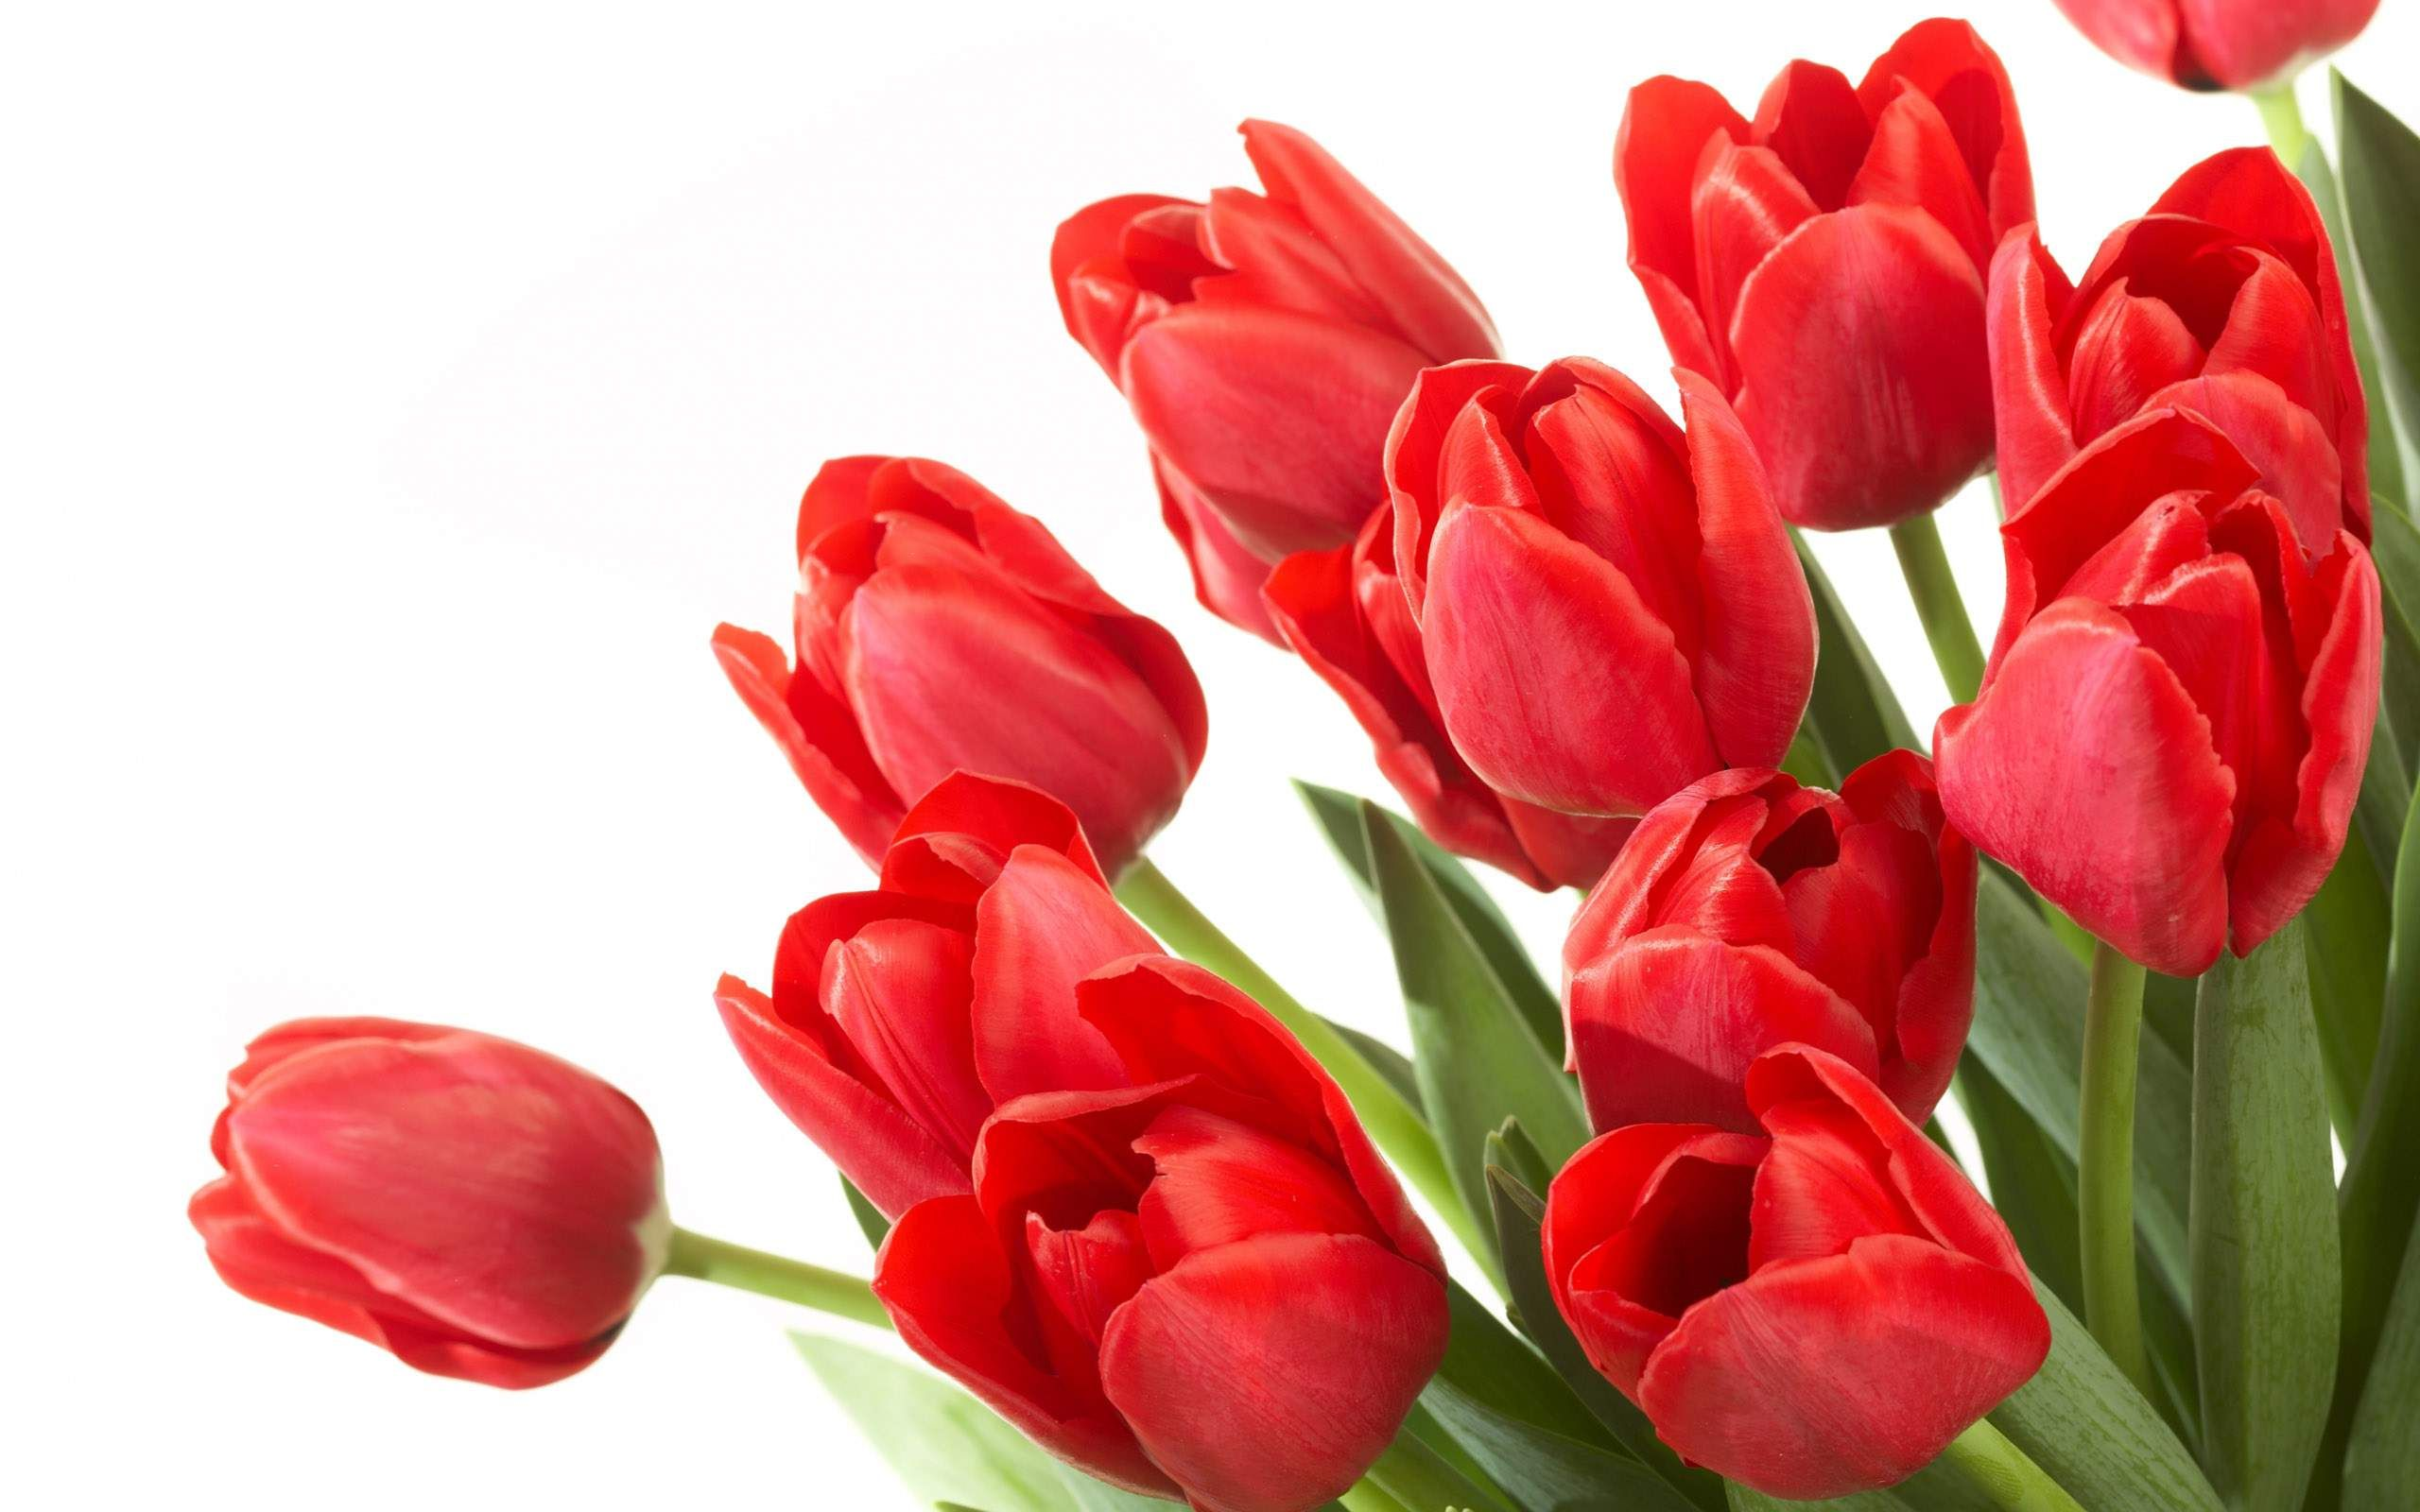 40 beautiful flower wallpapers free to download flowers tulips 40 beautiful flower wallpapers free to download dhlflorist Images